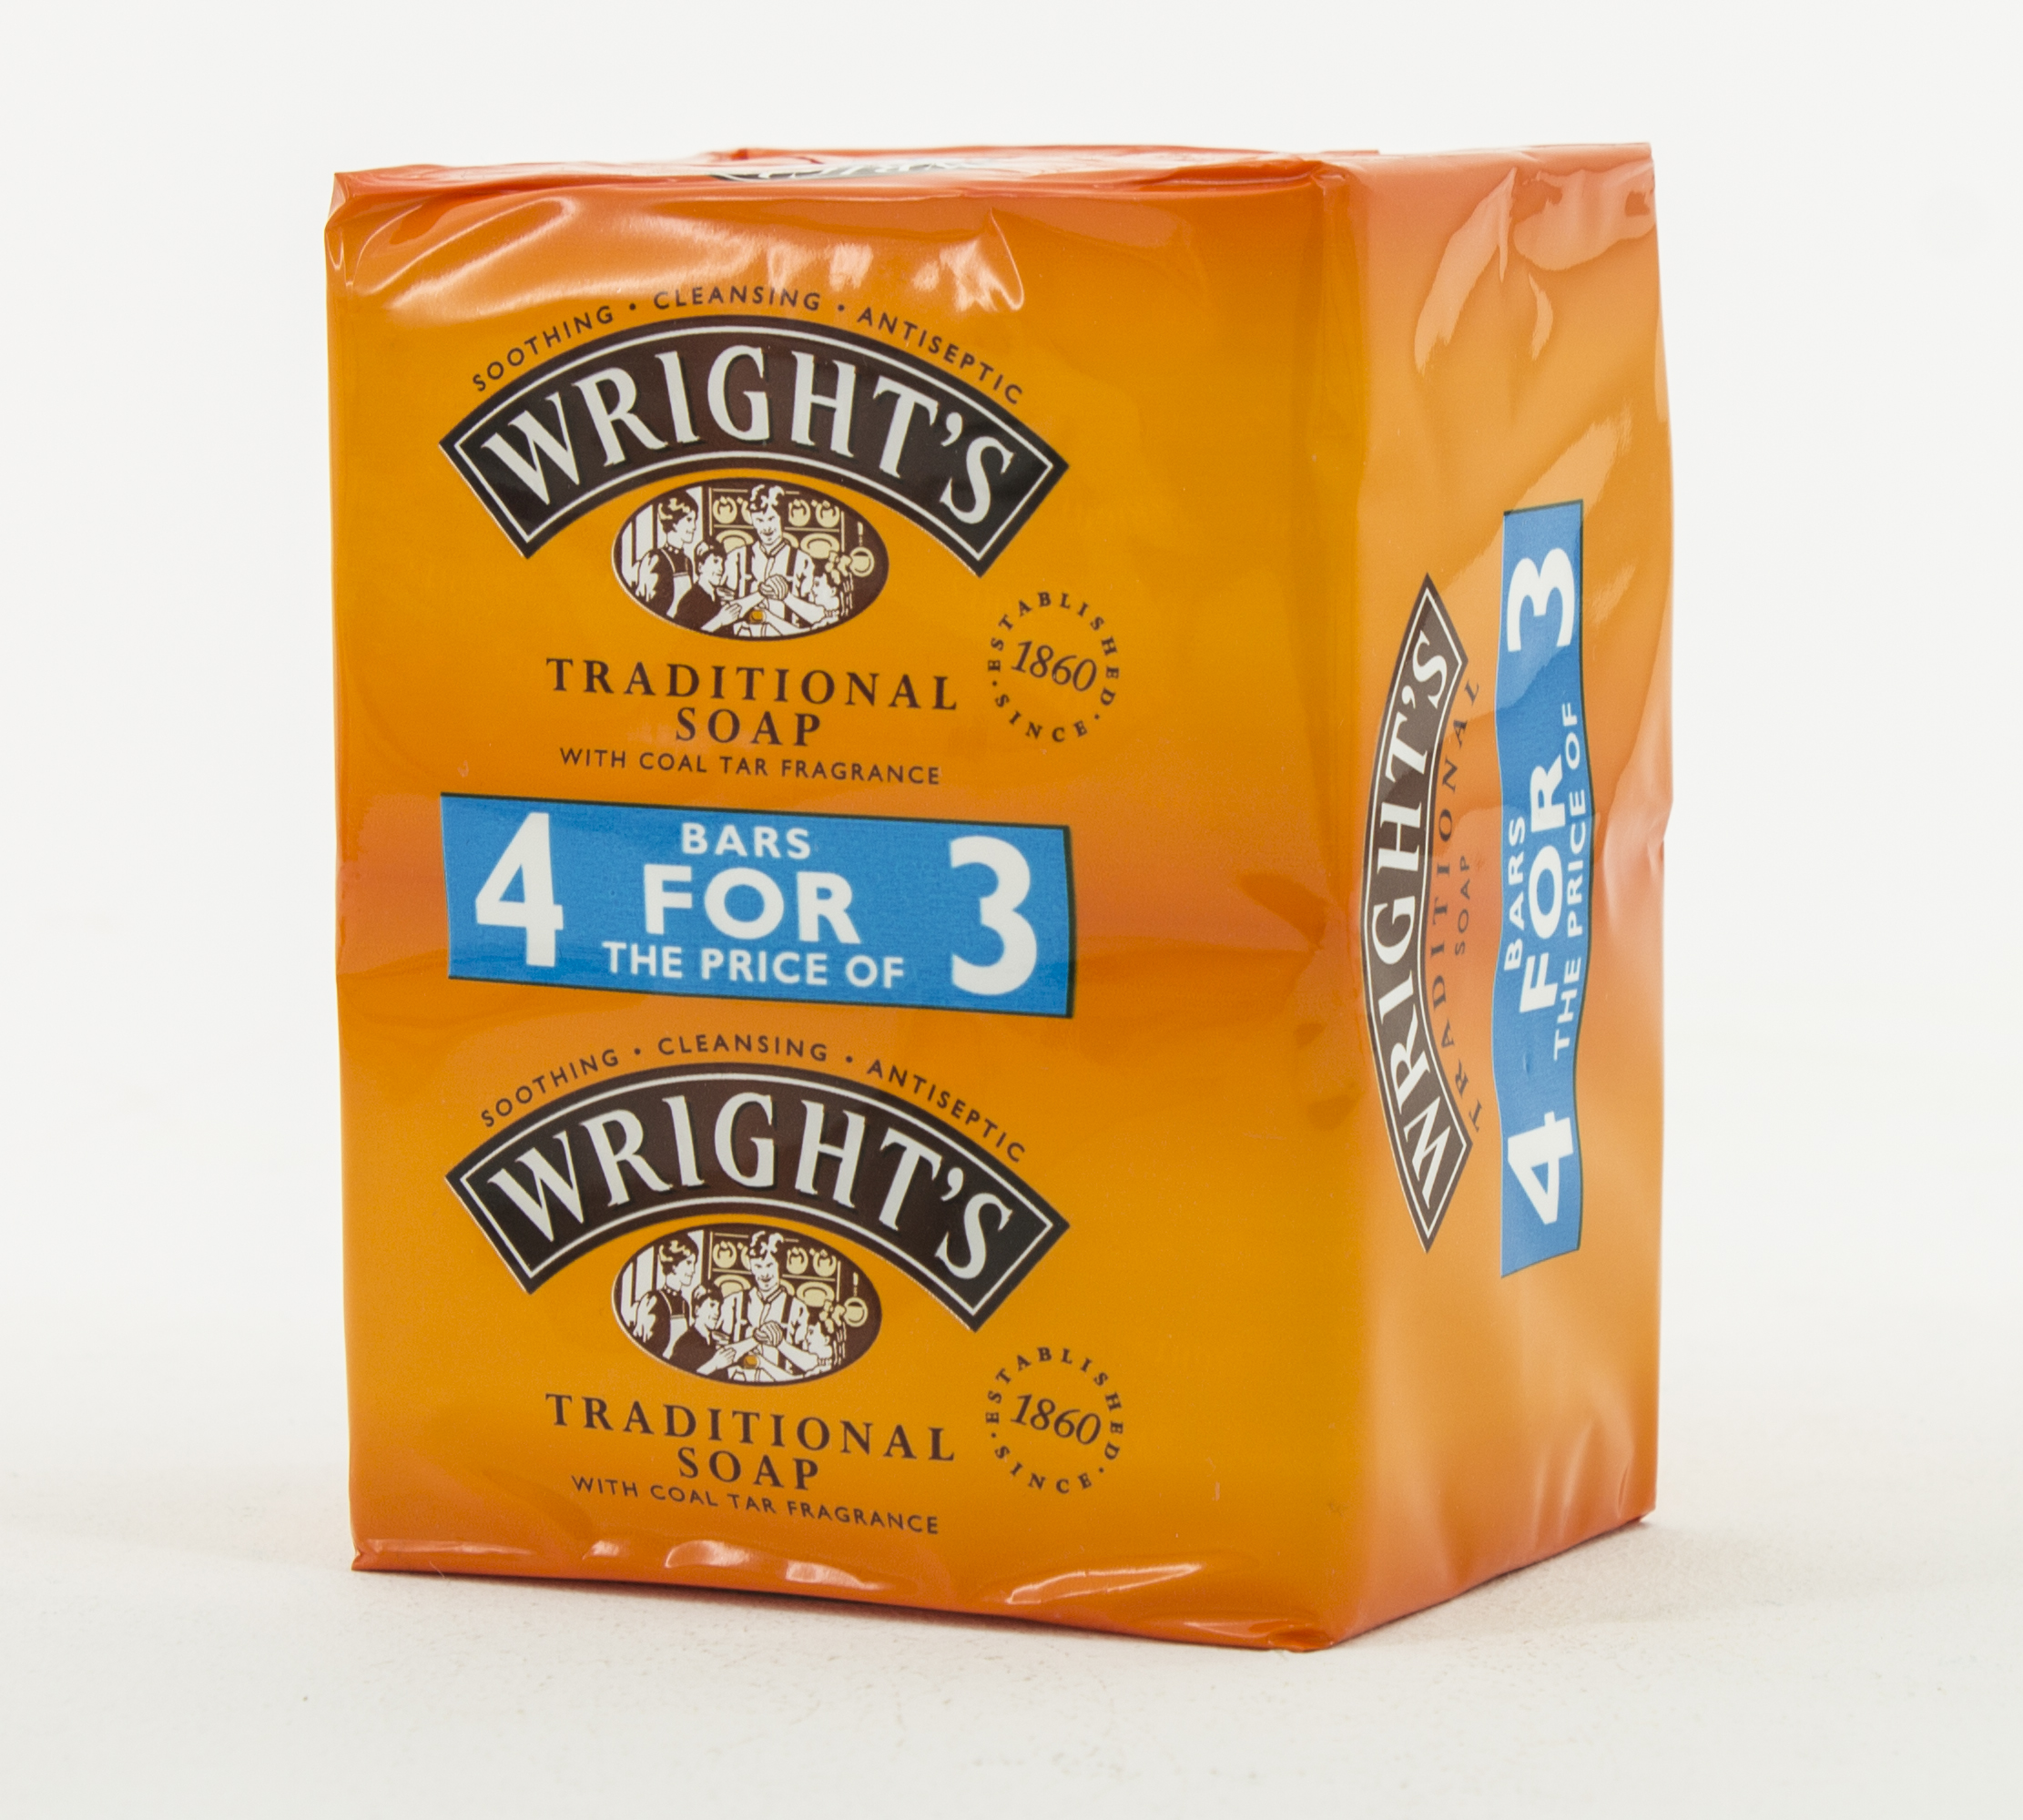 Wrights Traditional Coal Tar Soap - Pack of 4 thumbnail image 1